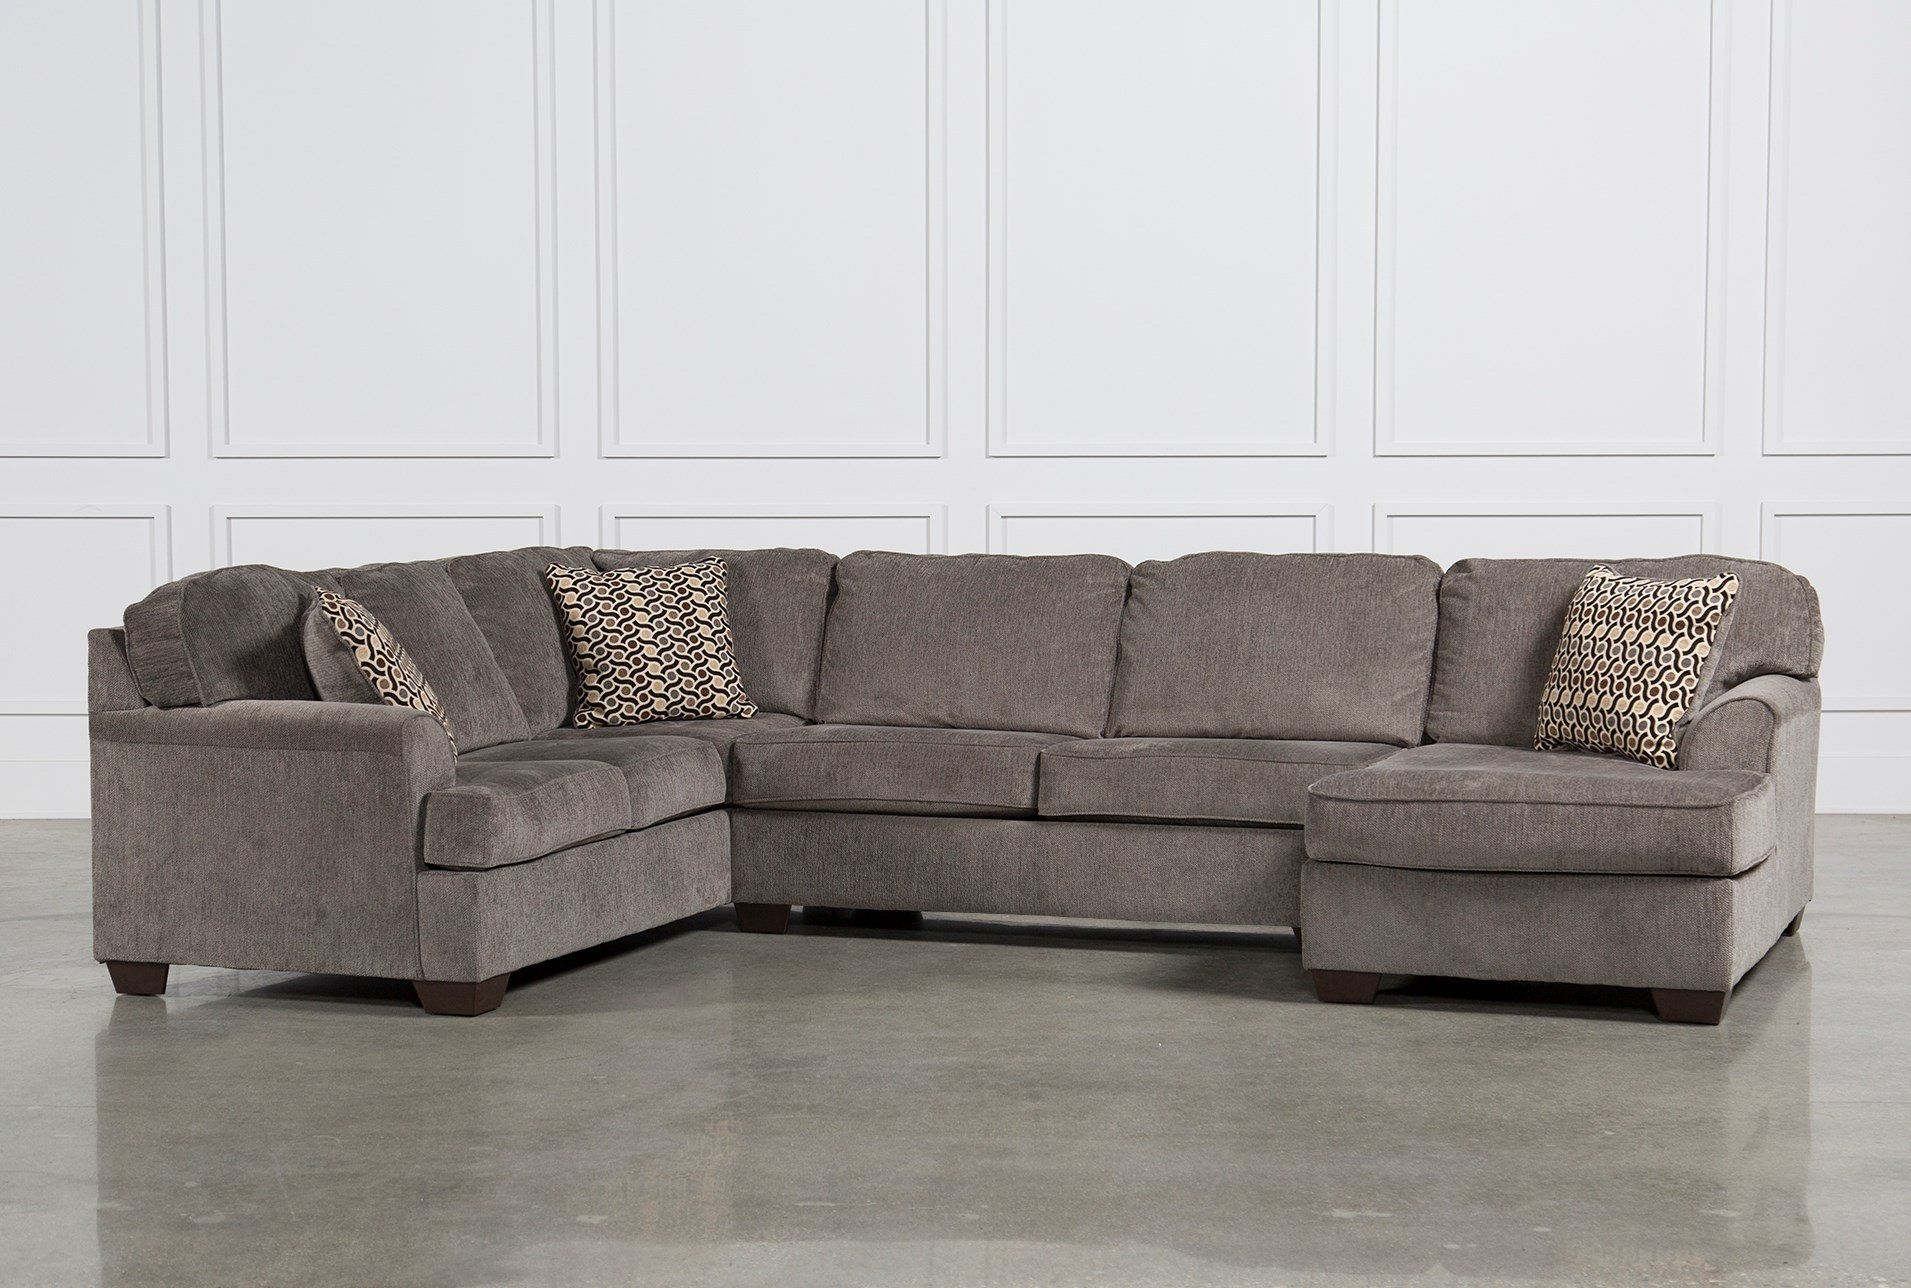 Loric Smoke 3 Piece Sectional W/raf Chaise | Upholstery, Pillows And with Malbry Point 3 Piece Sectionals With Laf Chaise (Image 25 of 30)